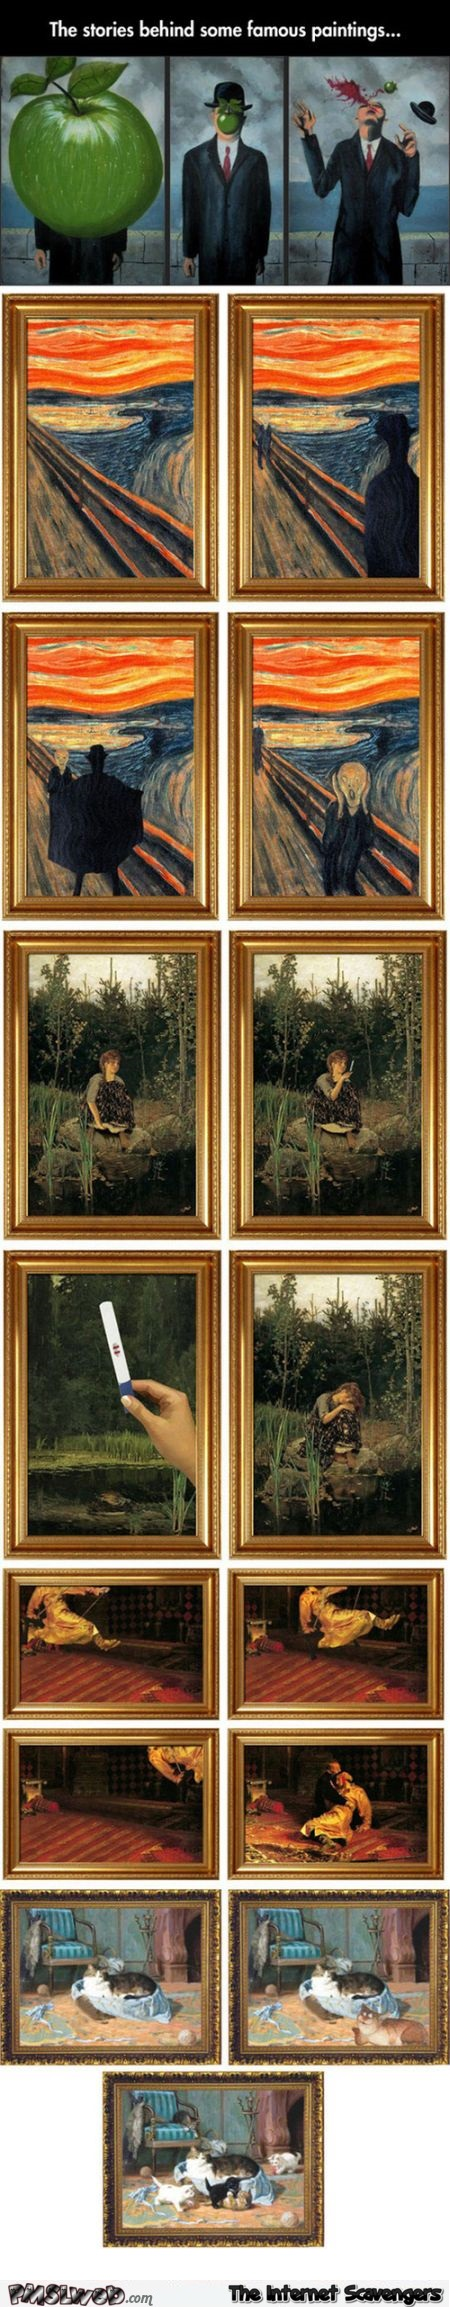 The story behind some famous paintings humor @PMSLweb.com